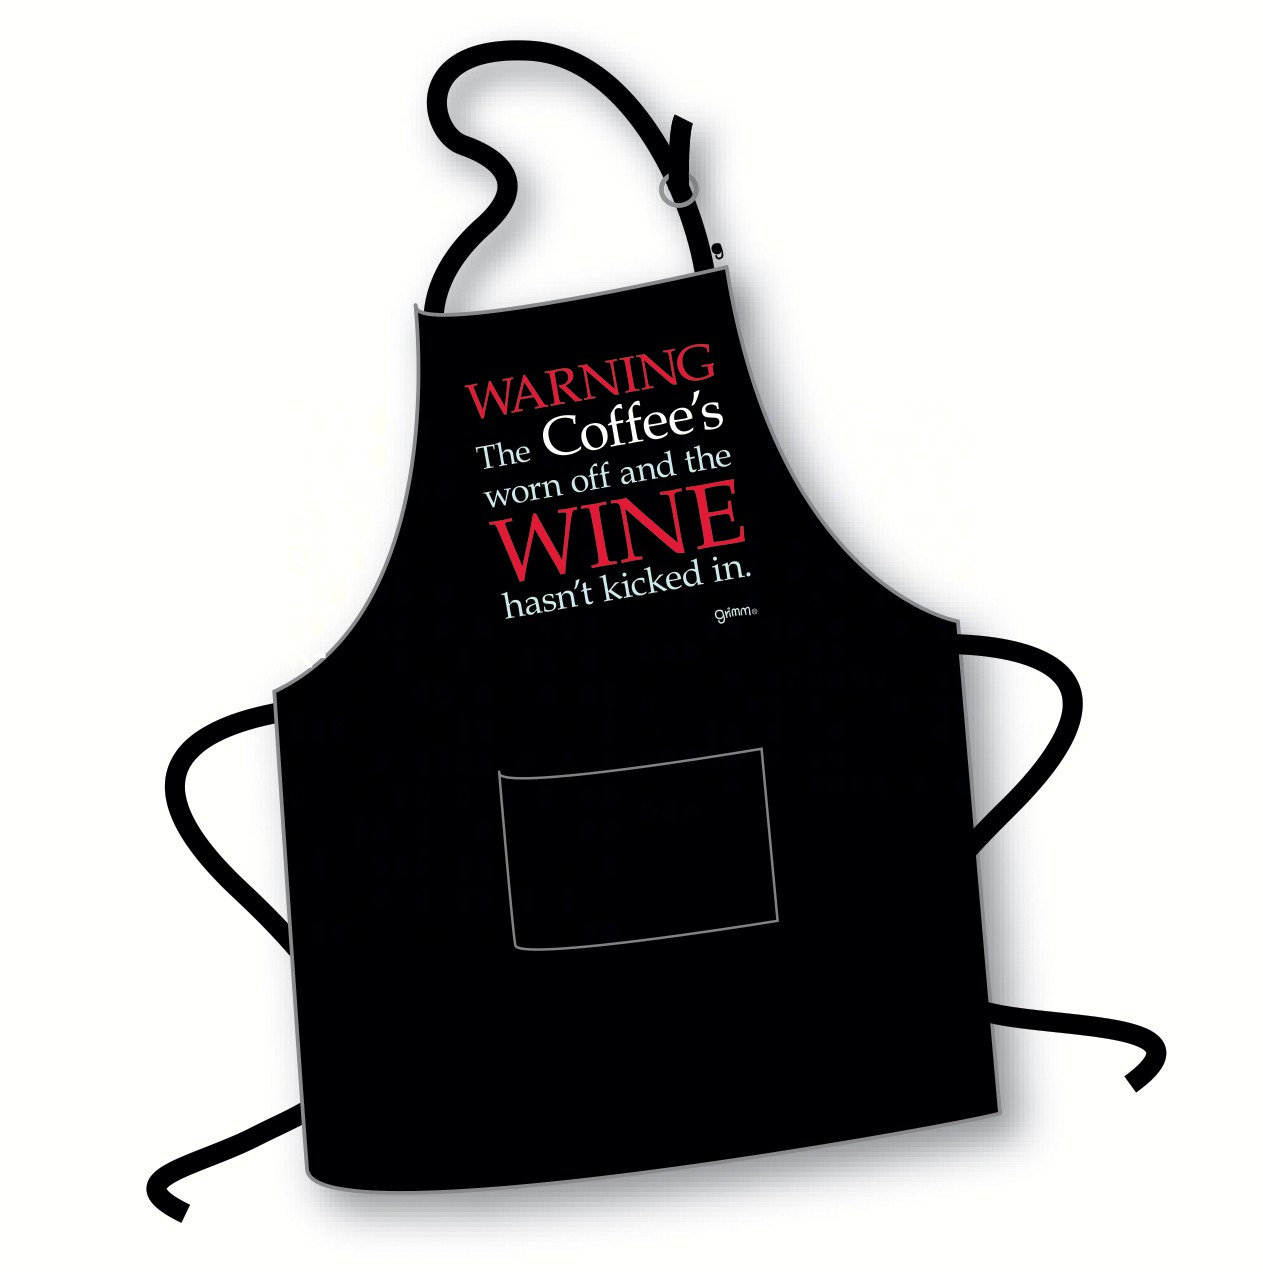 Warning.. The Coffee's Worn Off and the Wine Hasn't Kicked In Apron